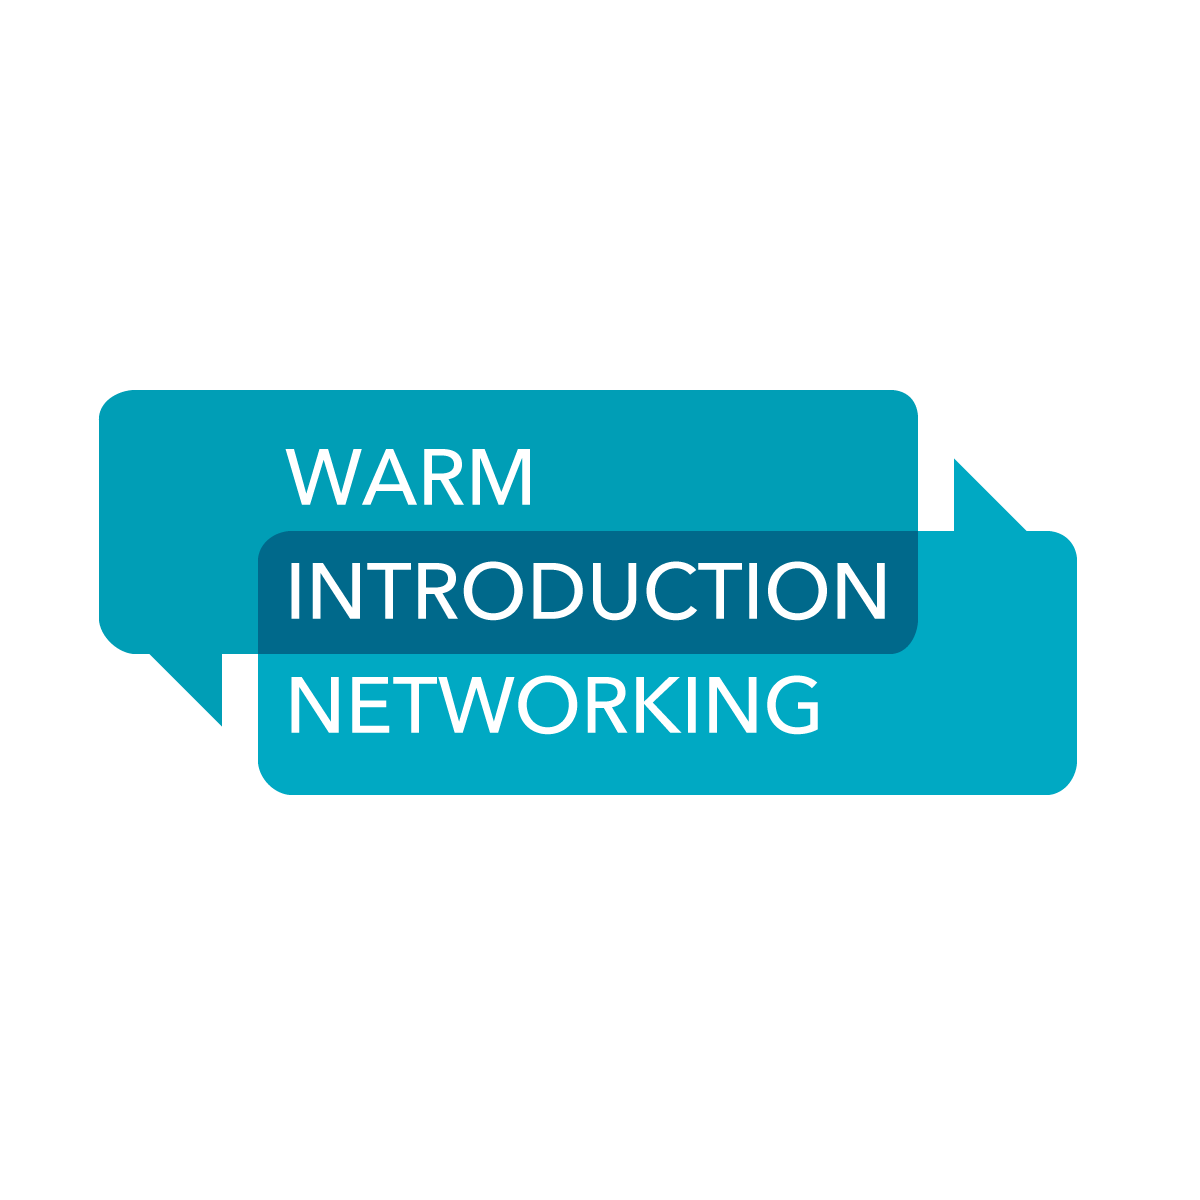 Warm Introduction Networking